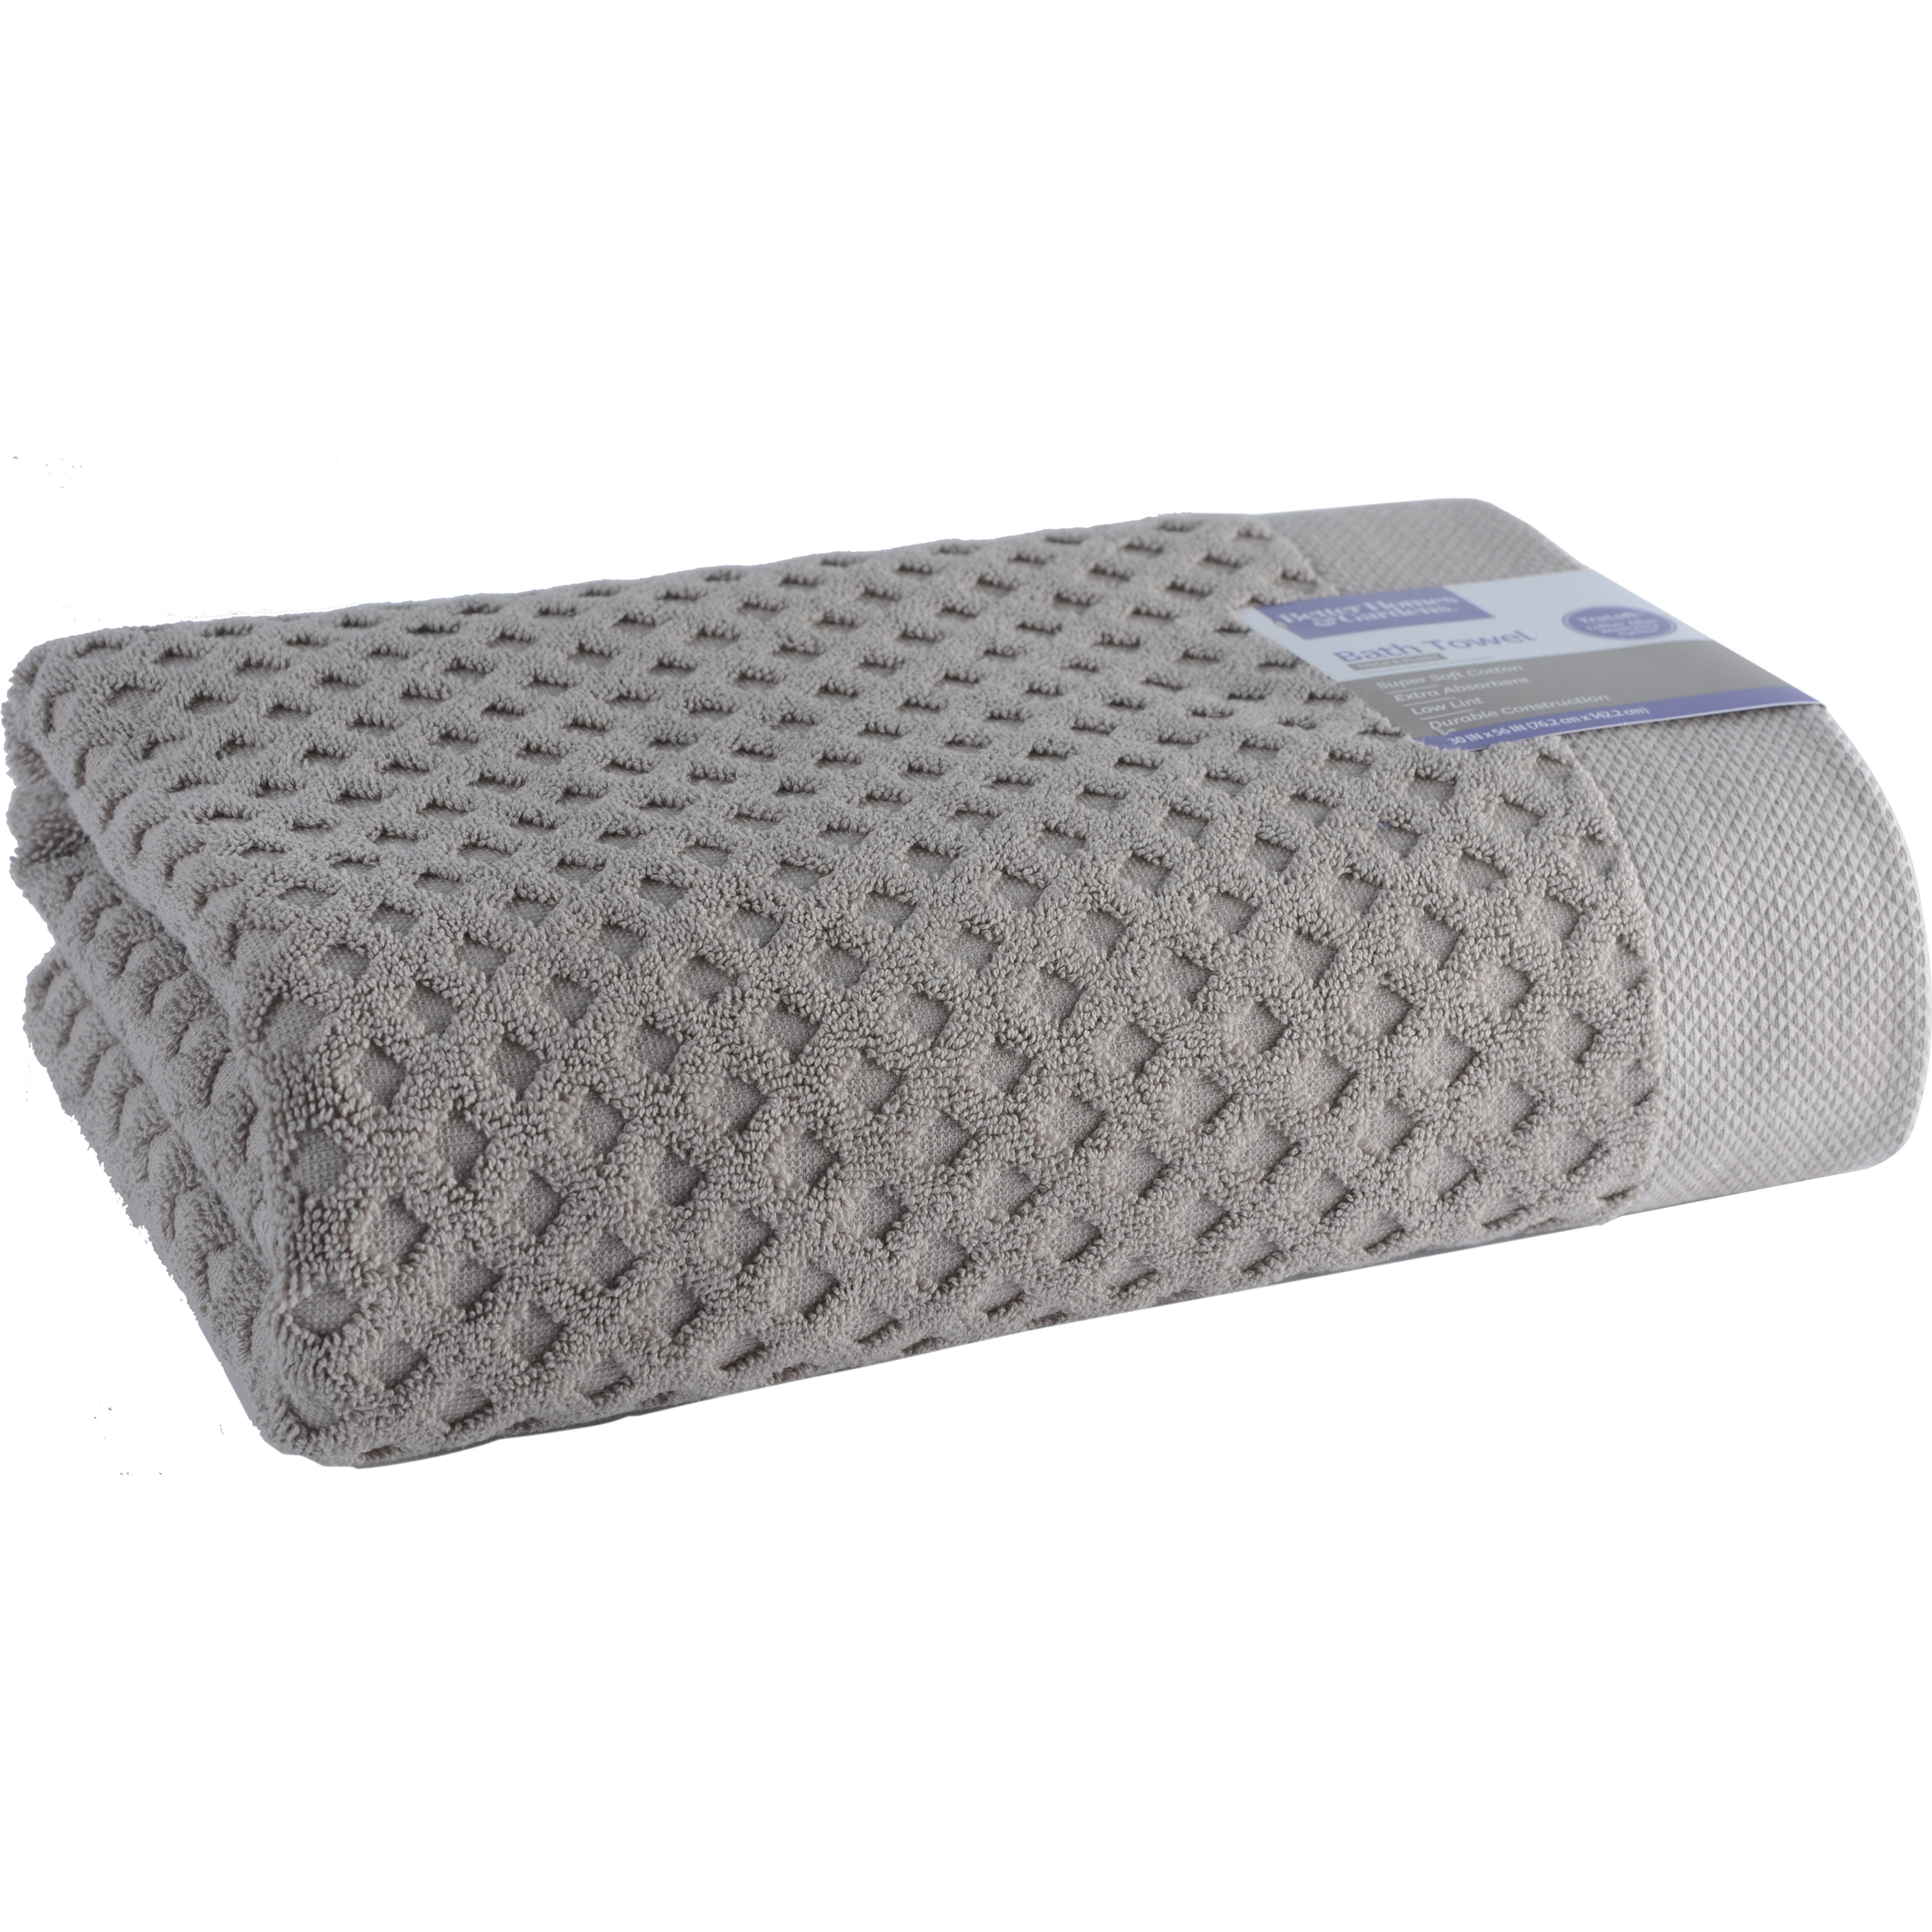 Better Homes and Gardens Thick and Plush Solid Textured Bath Towel Collection by Loftex China LTD